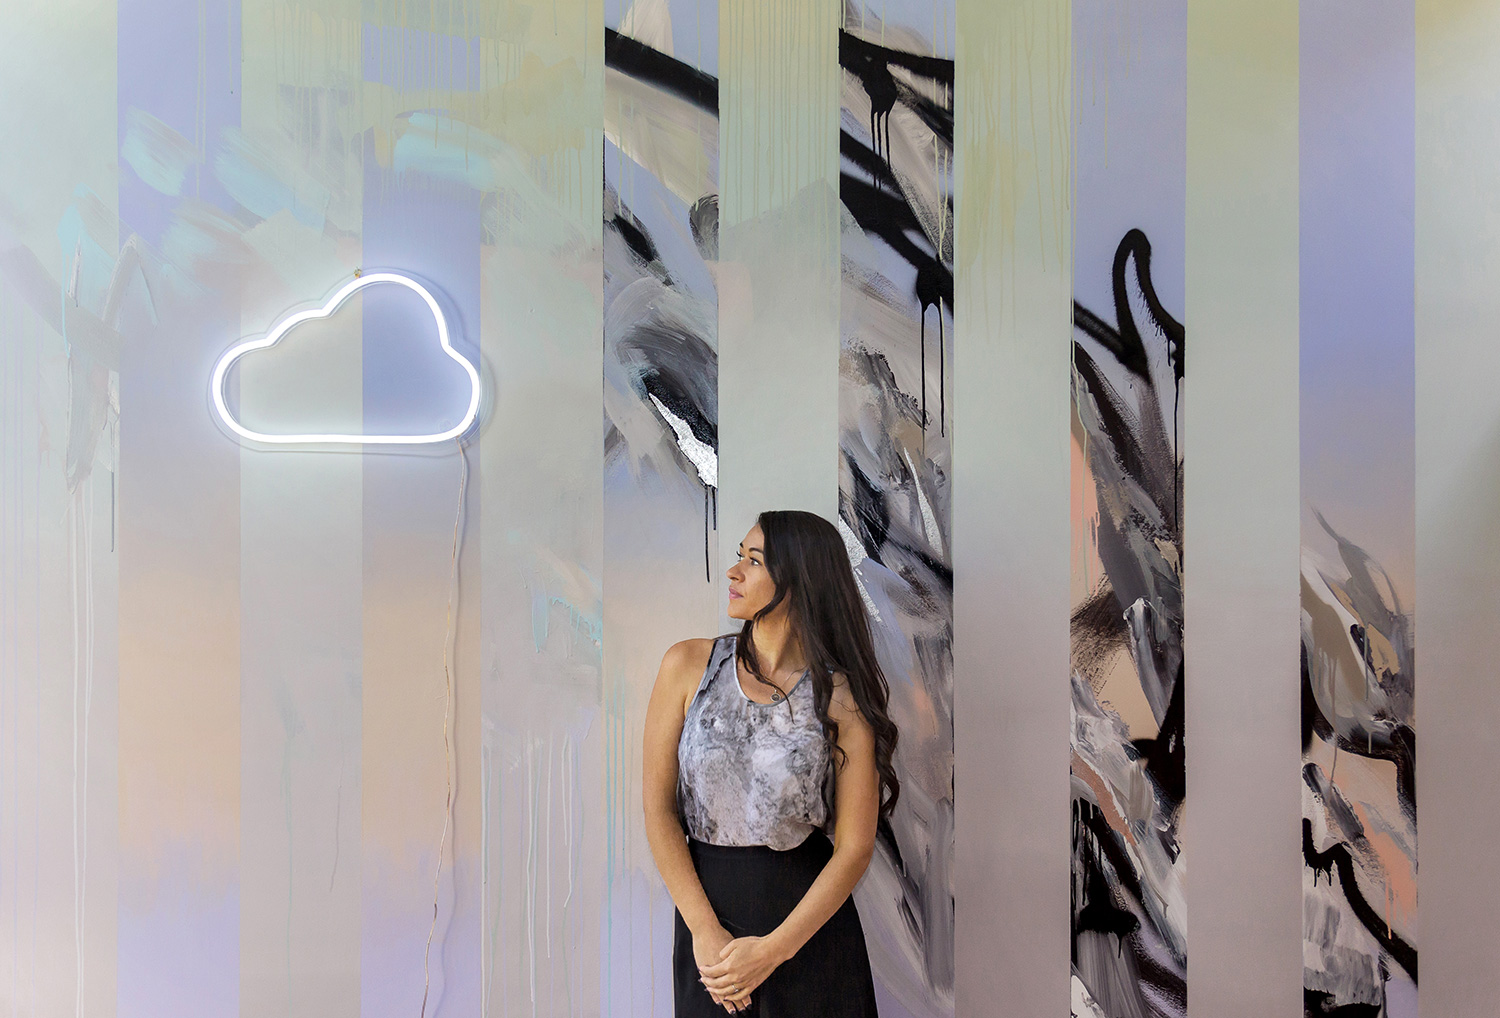 Model with long wavy black hair gazes at the clouds wearing marble silk top and high waist modern skirt, behind her is an abstract painted wall mural, beautifully styled with an LED neon cloud sign.